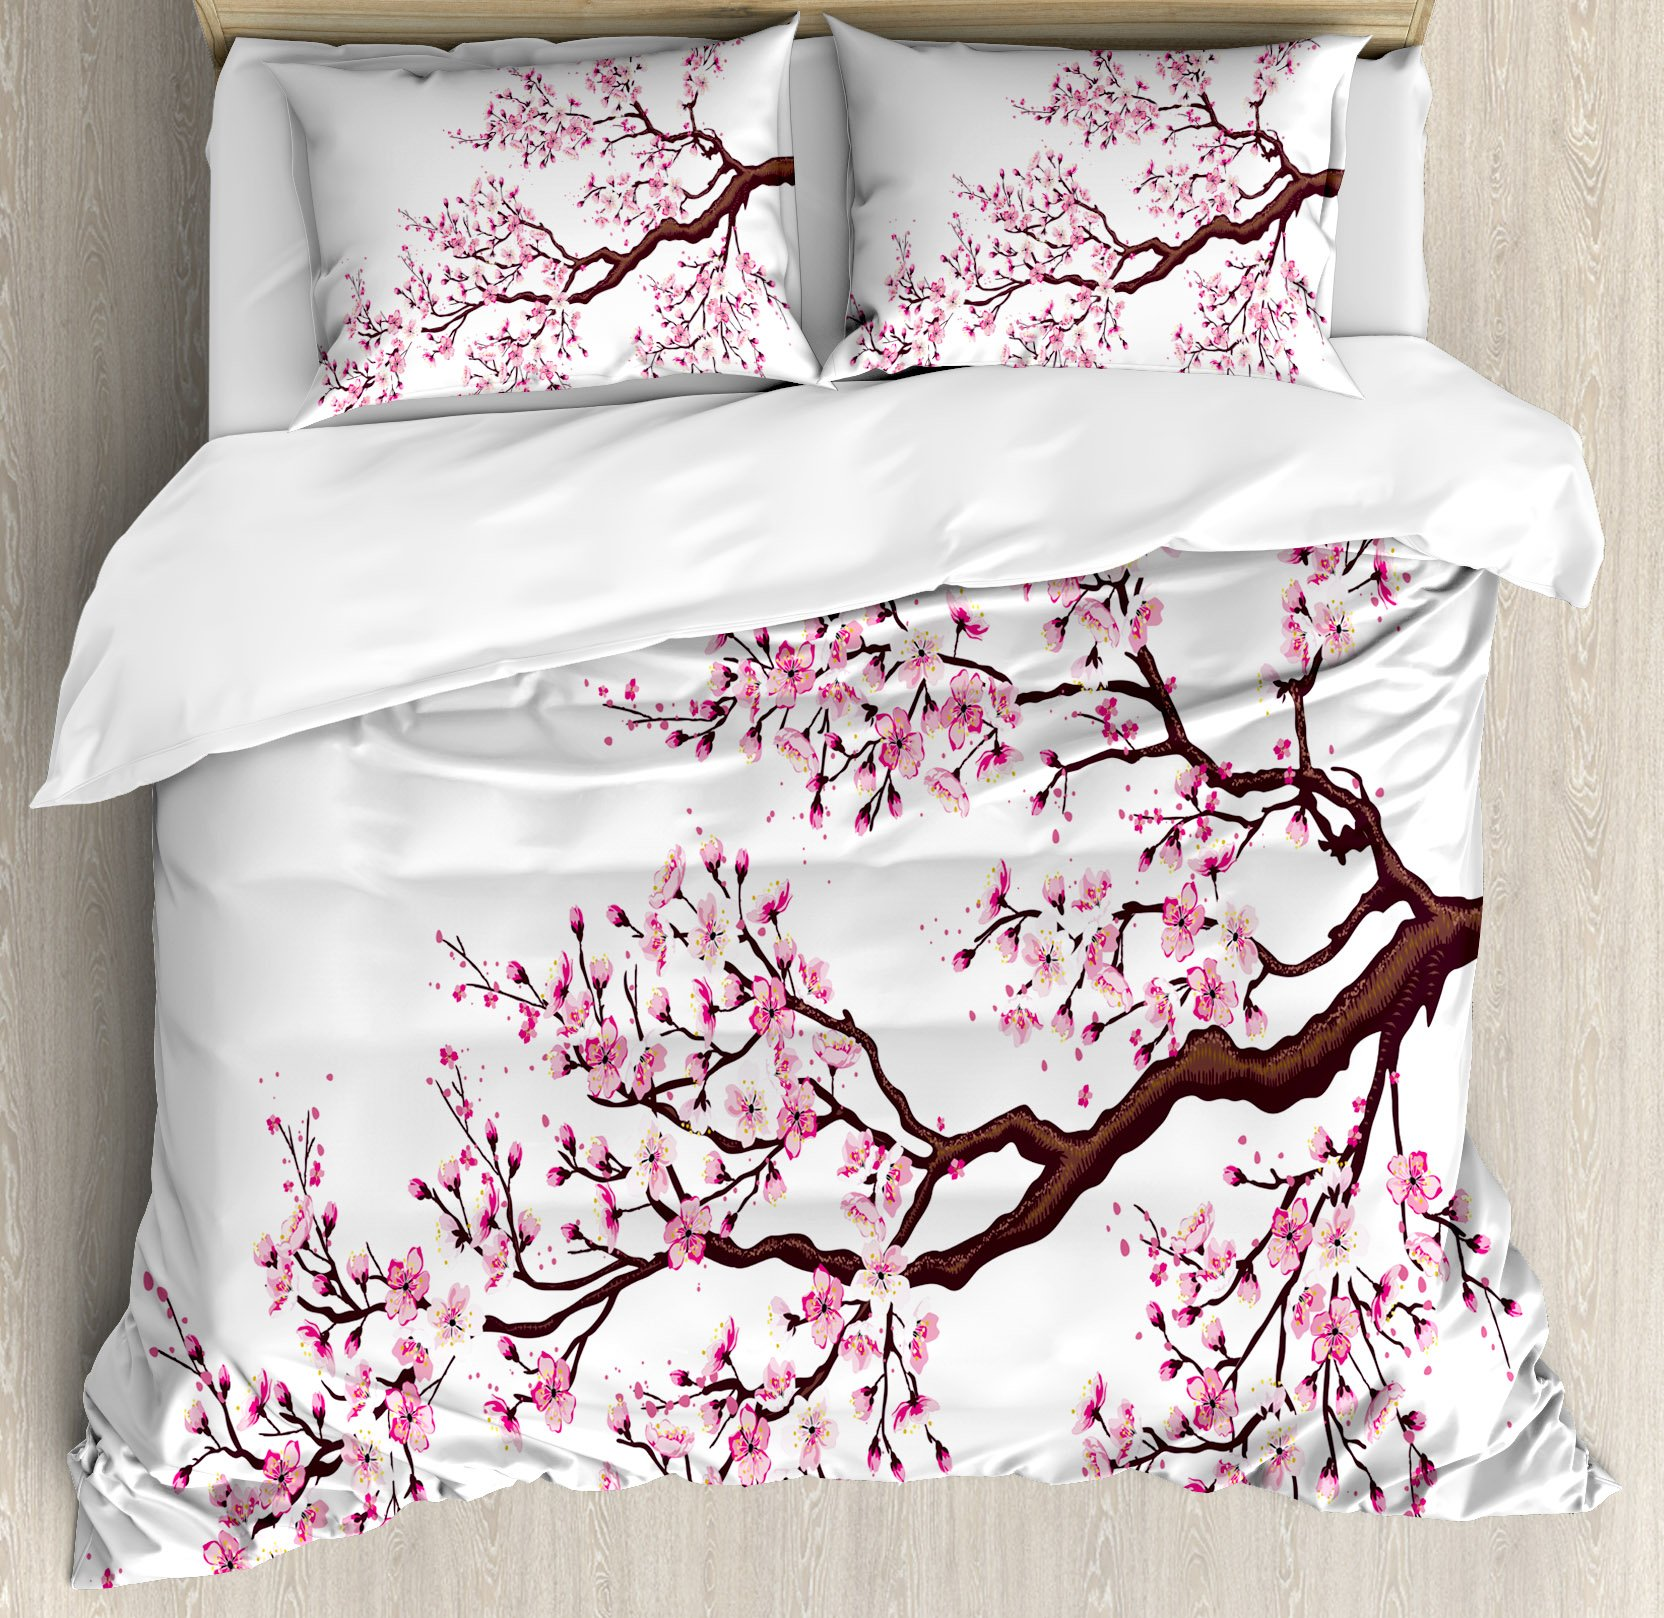 Japanese Duvet Cover Set King Size by Ambesonne, Branch of a Flourishing Sakura Tree Flowers Cherry Blossoms Spring Theme Art, Decorative 3 Piece Bedding Set with 2 Pillow Shams, Pink Dark Brown by Ambesonne (Image #1)